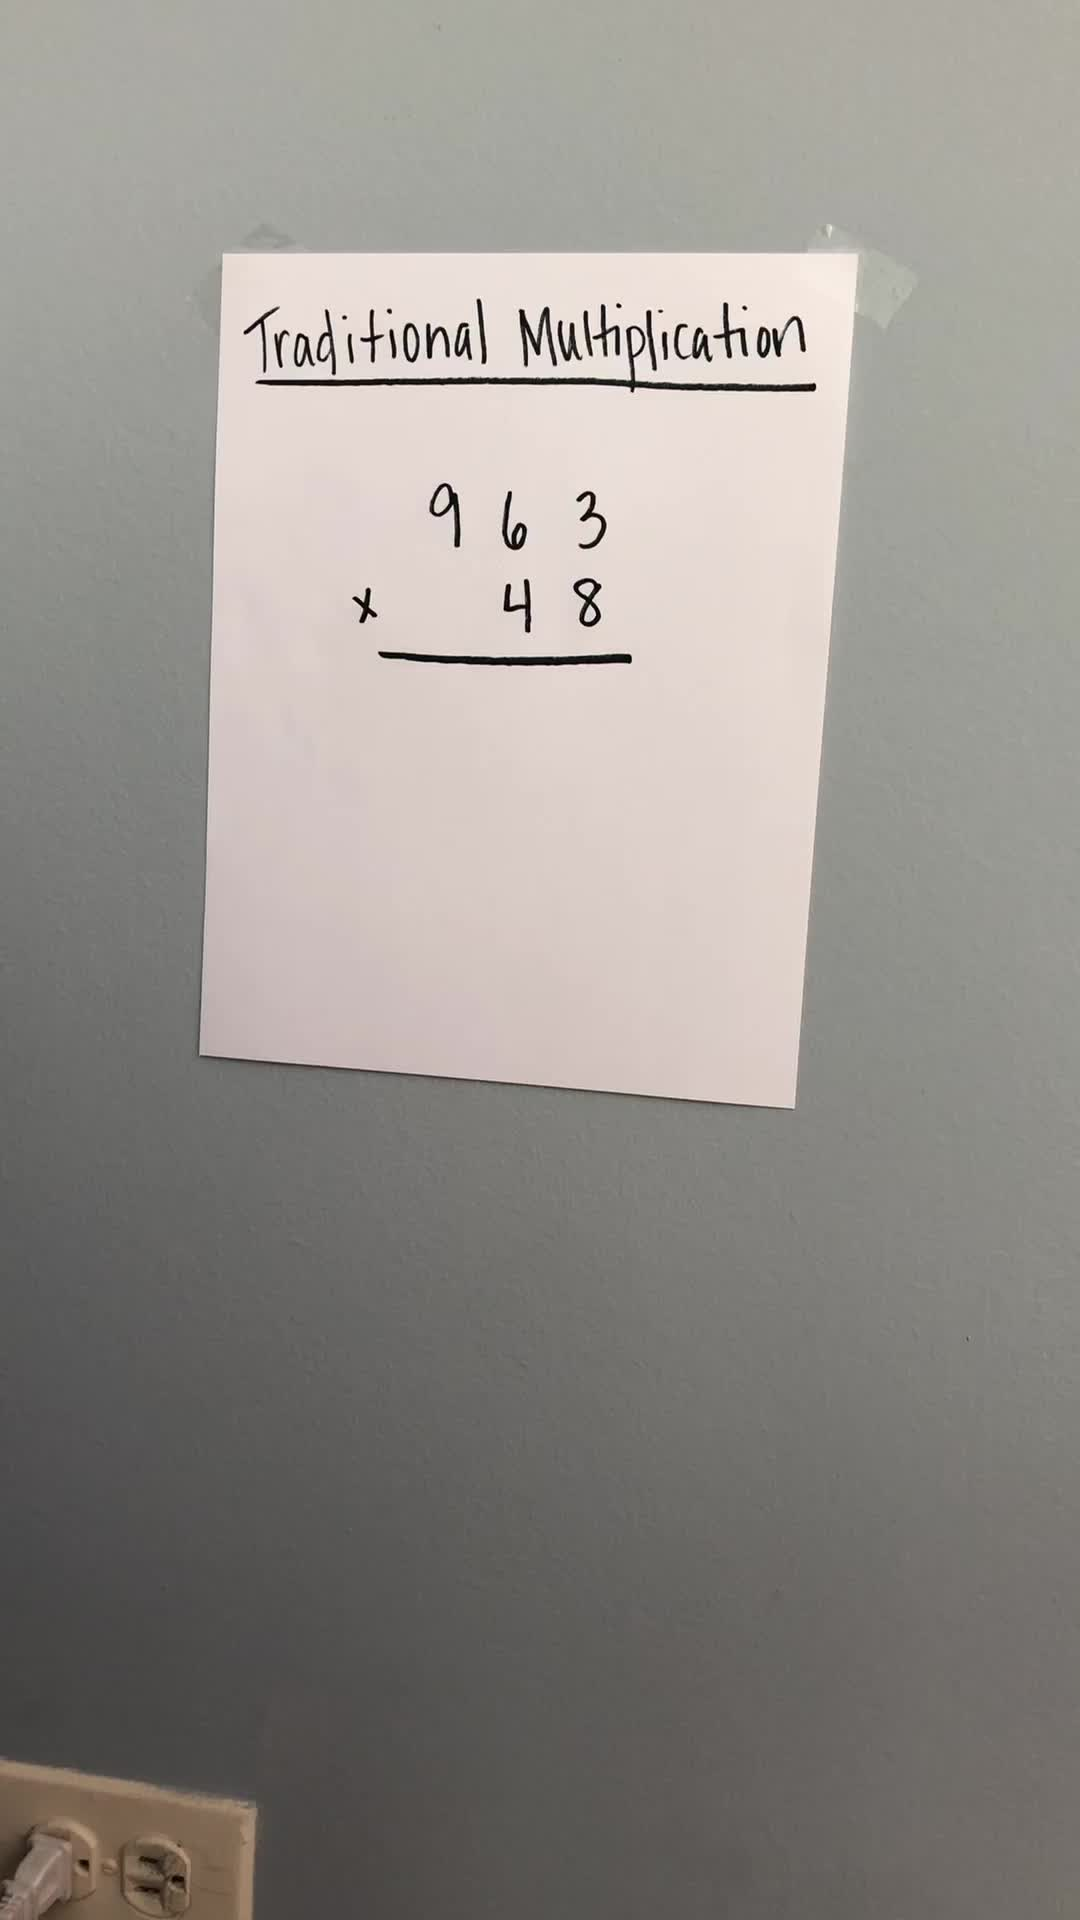 Traditional Multiplication Example